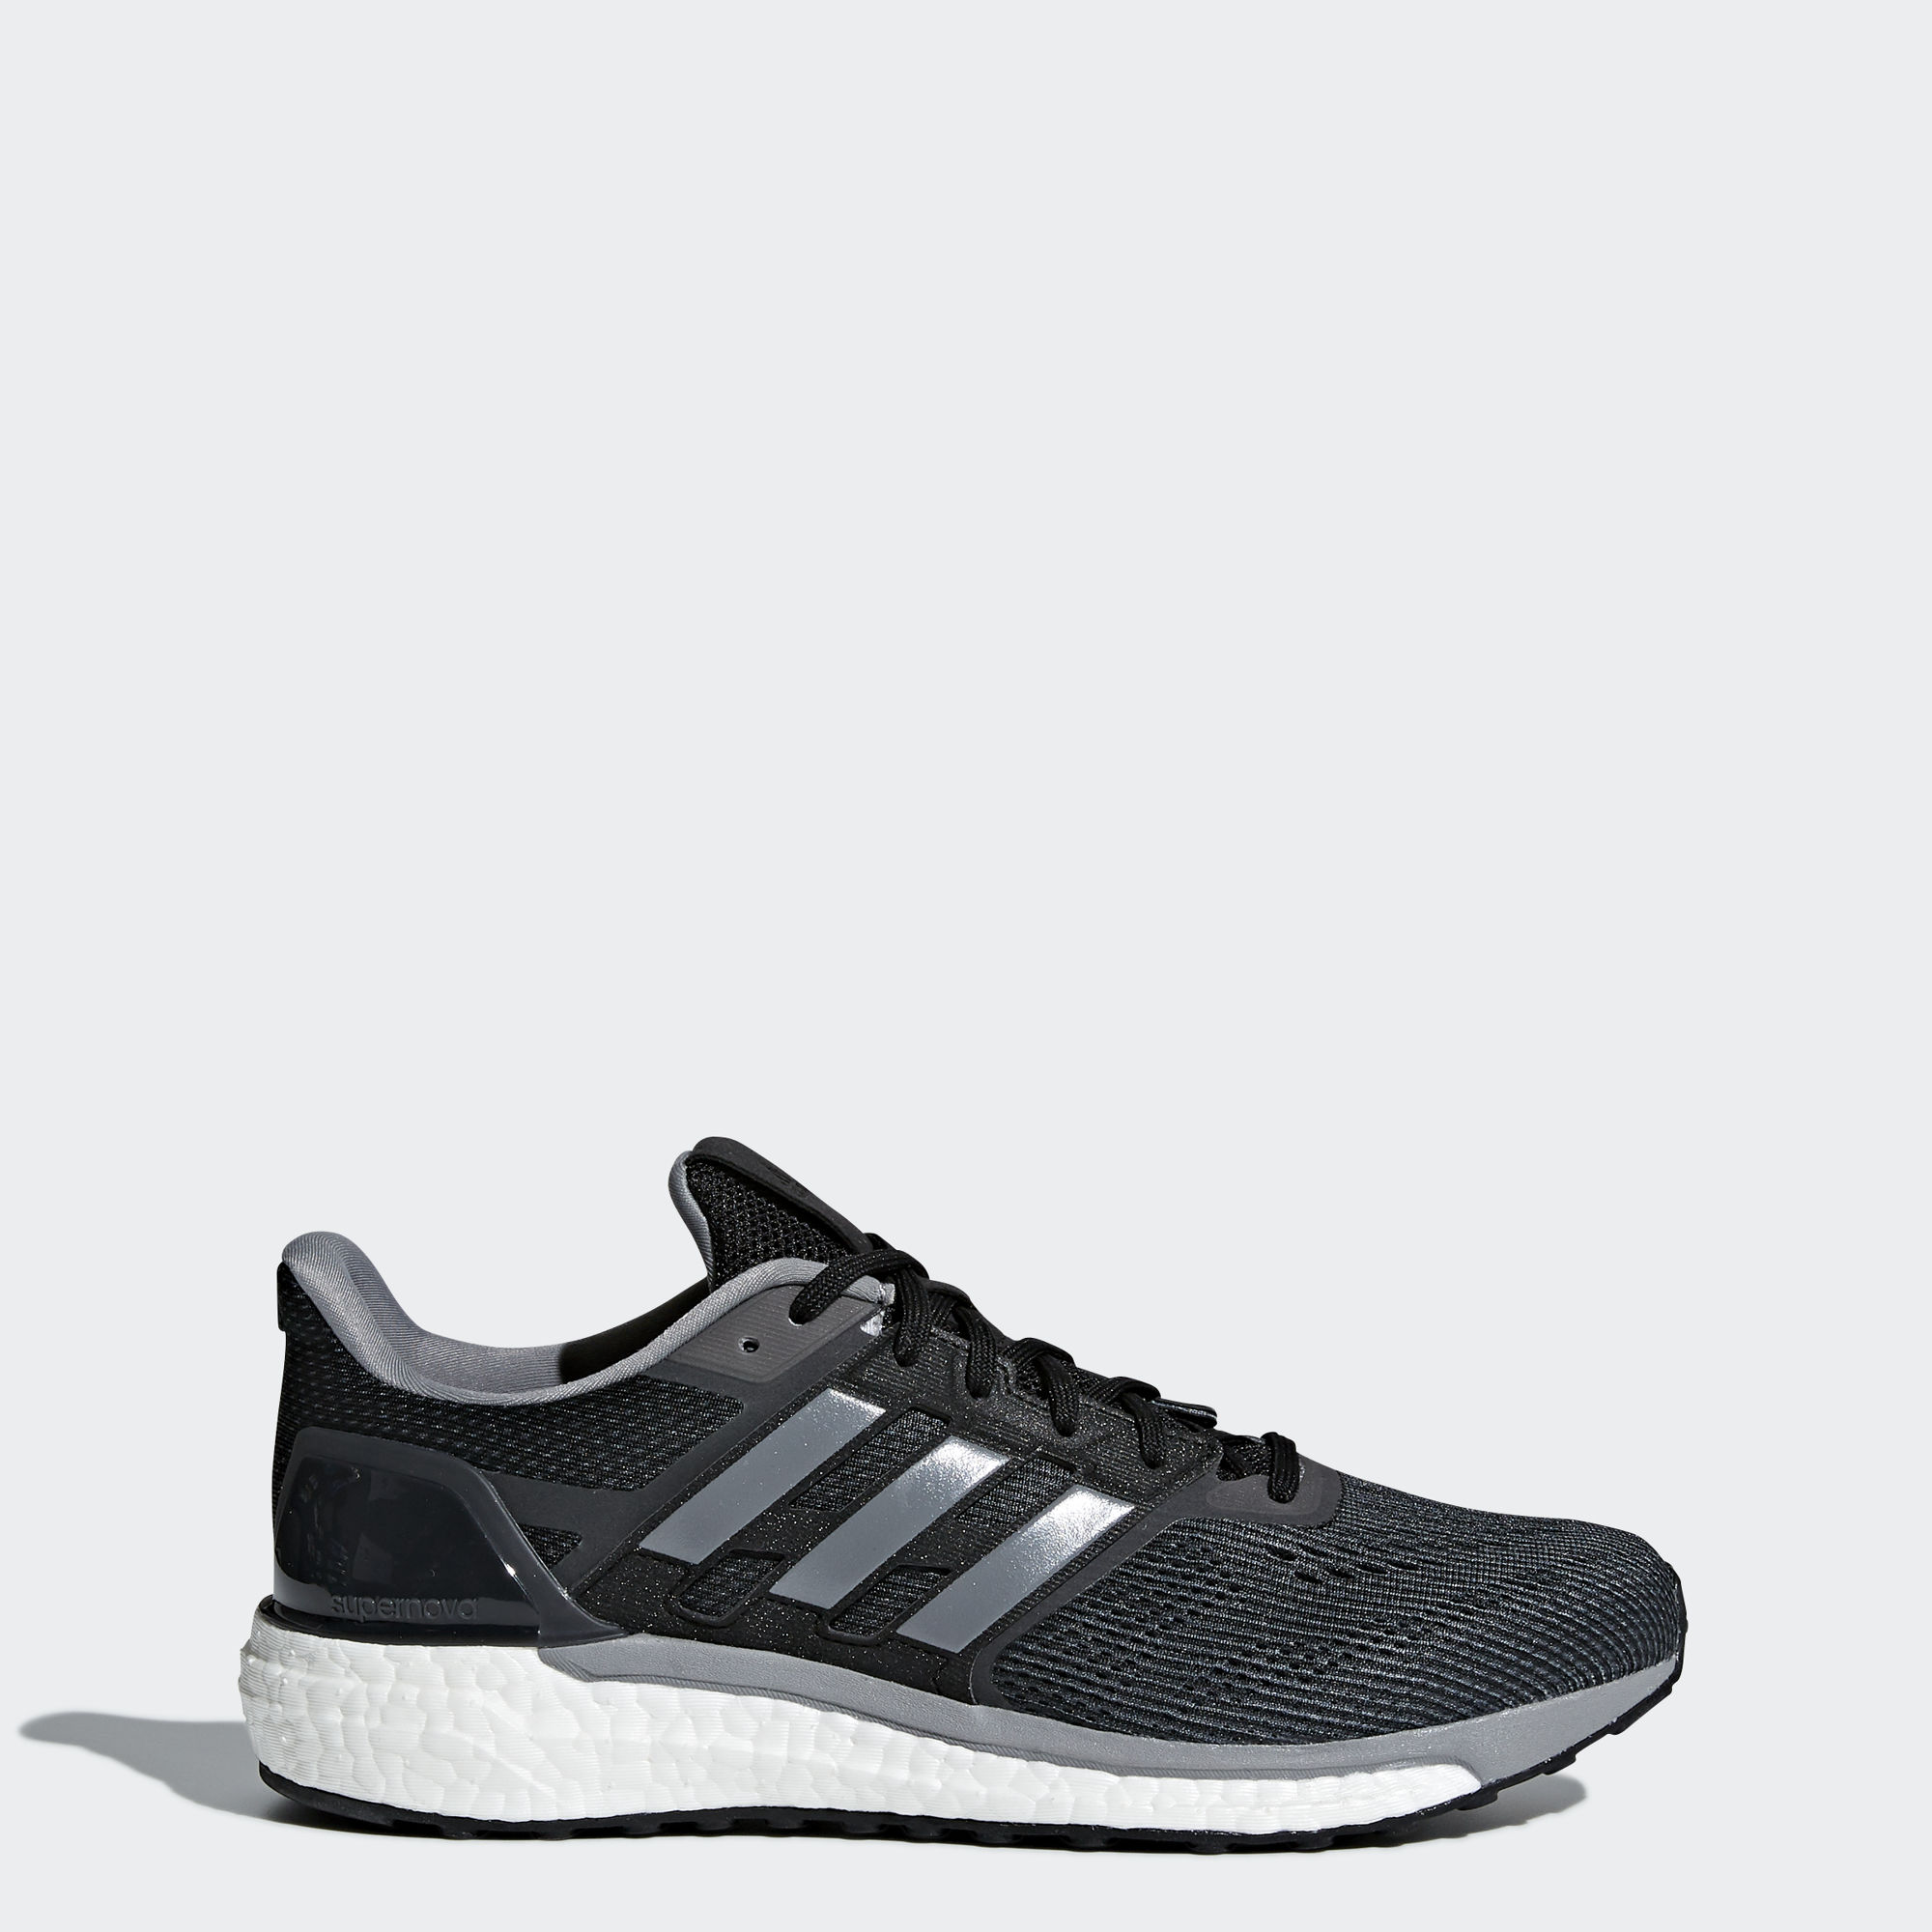 adidas Supernova in Grau